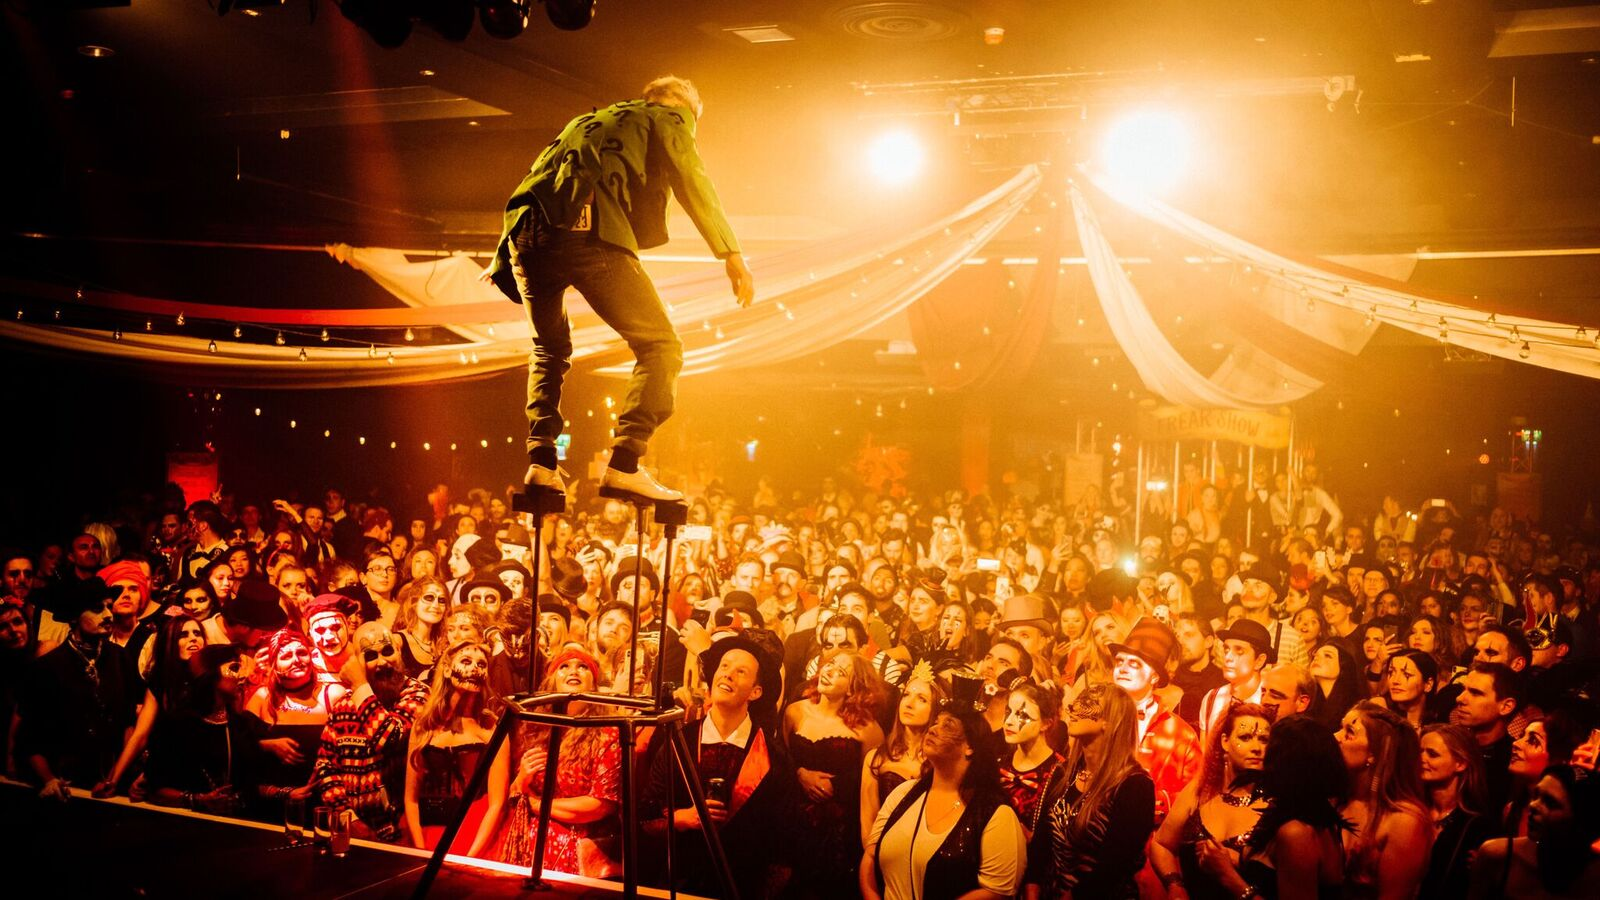 Dark Circus Party Halloween Special | Clink Hostels